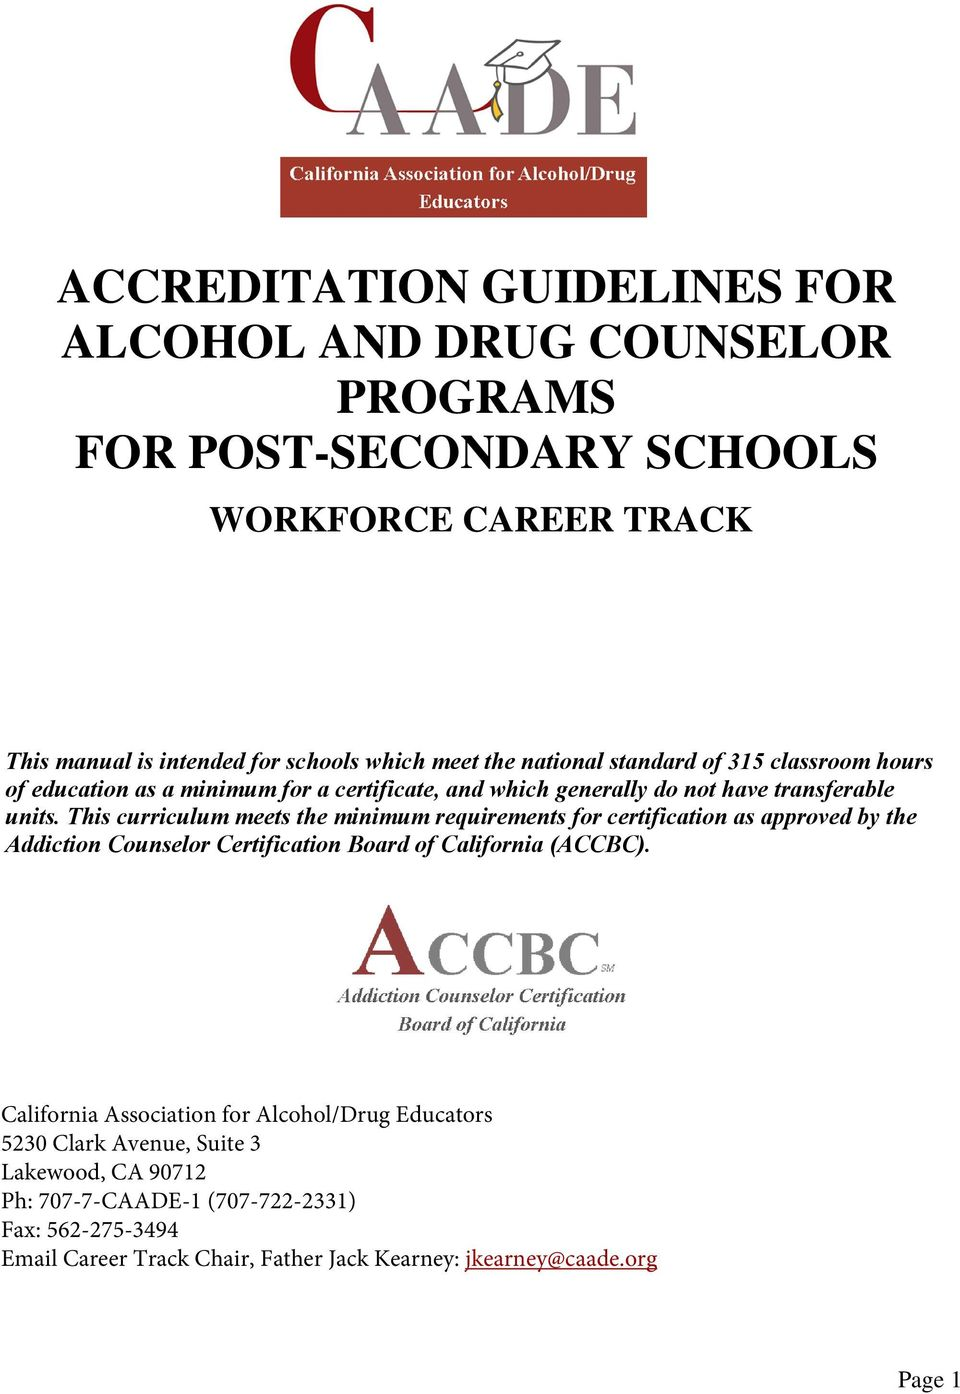 Accreditation Guidelines For Alcohol And Drug Counselor Programs For